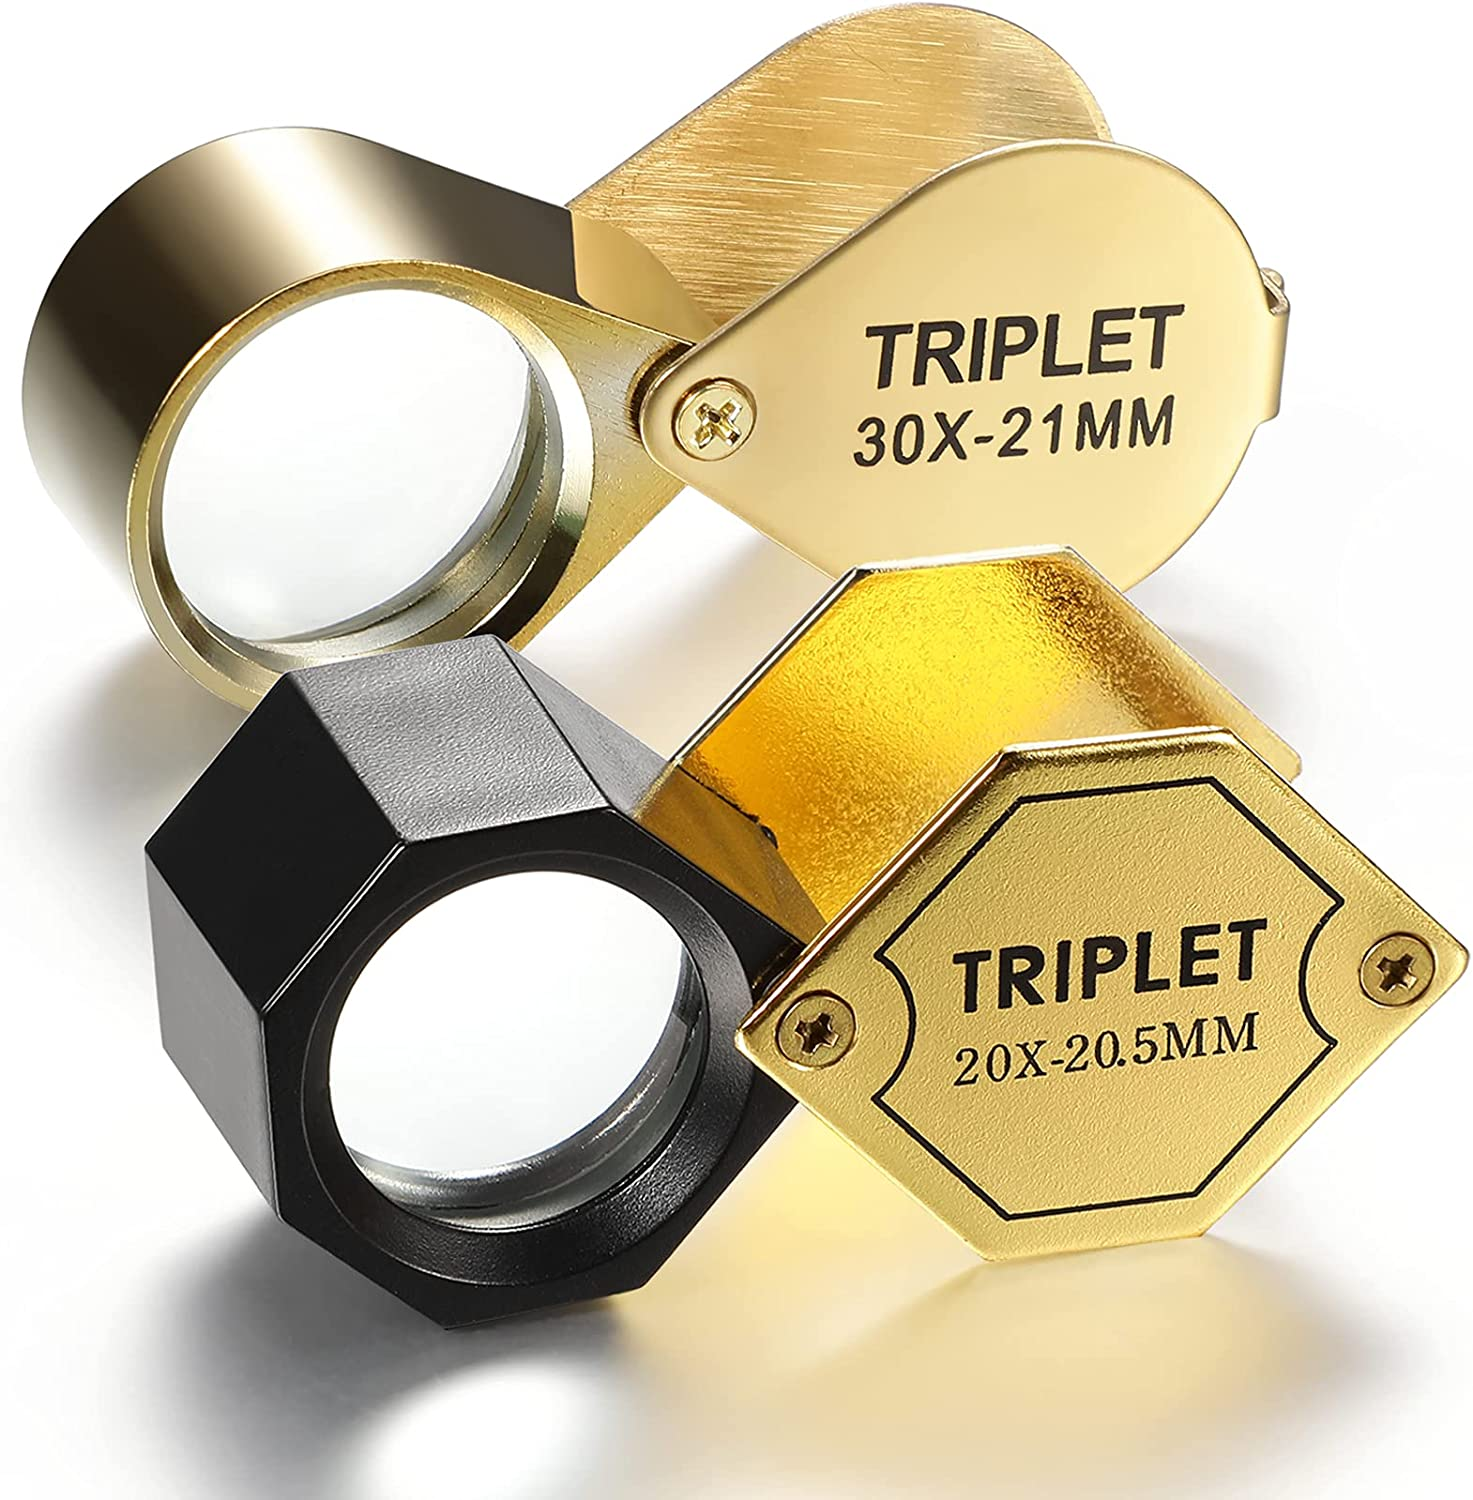 2 Pieces Jeweler Loupe Loop Translated Glass Jewelers Magnifying Pocket 55% OFF Eye